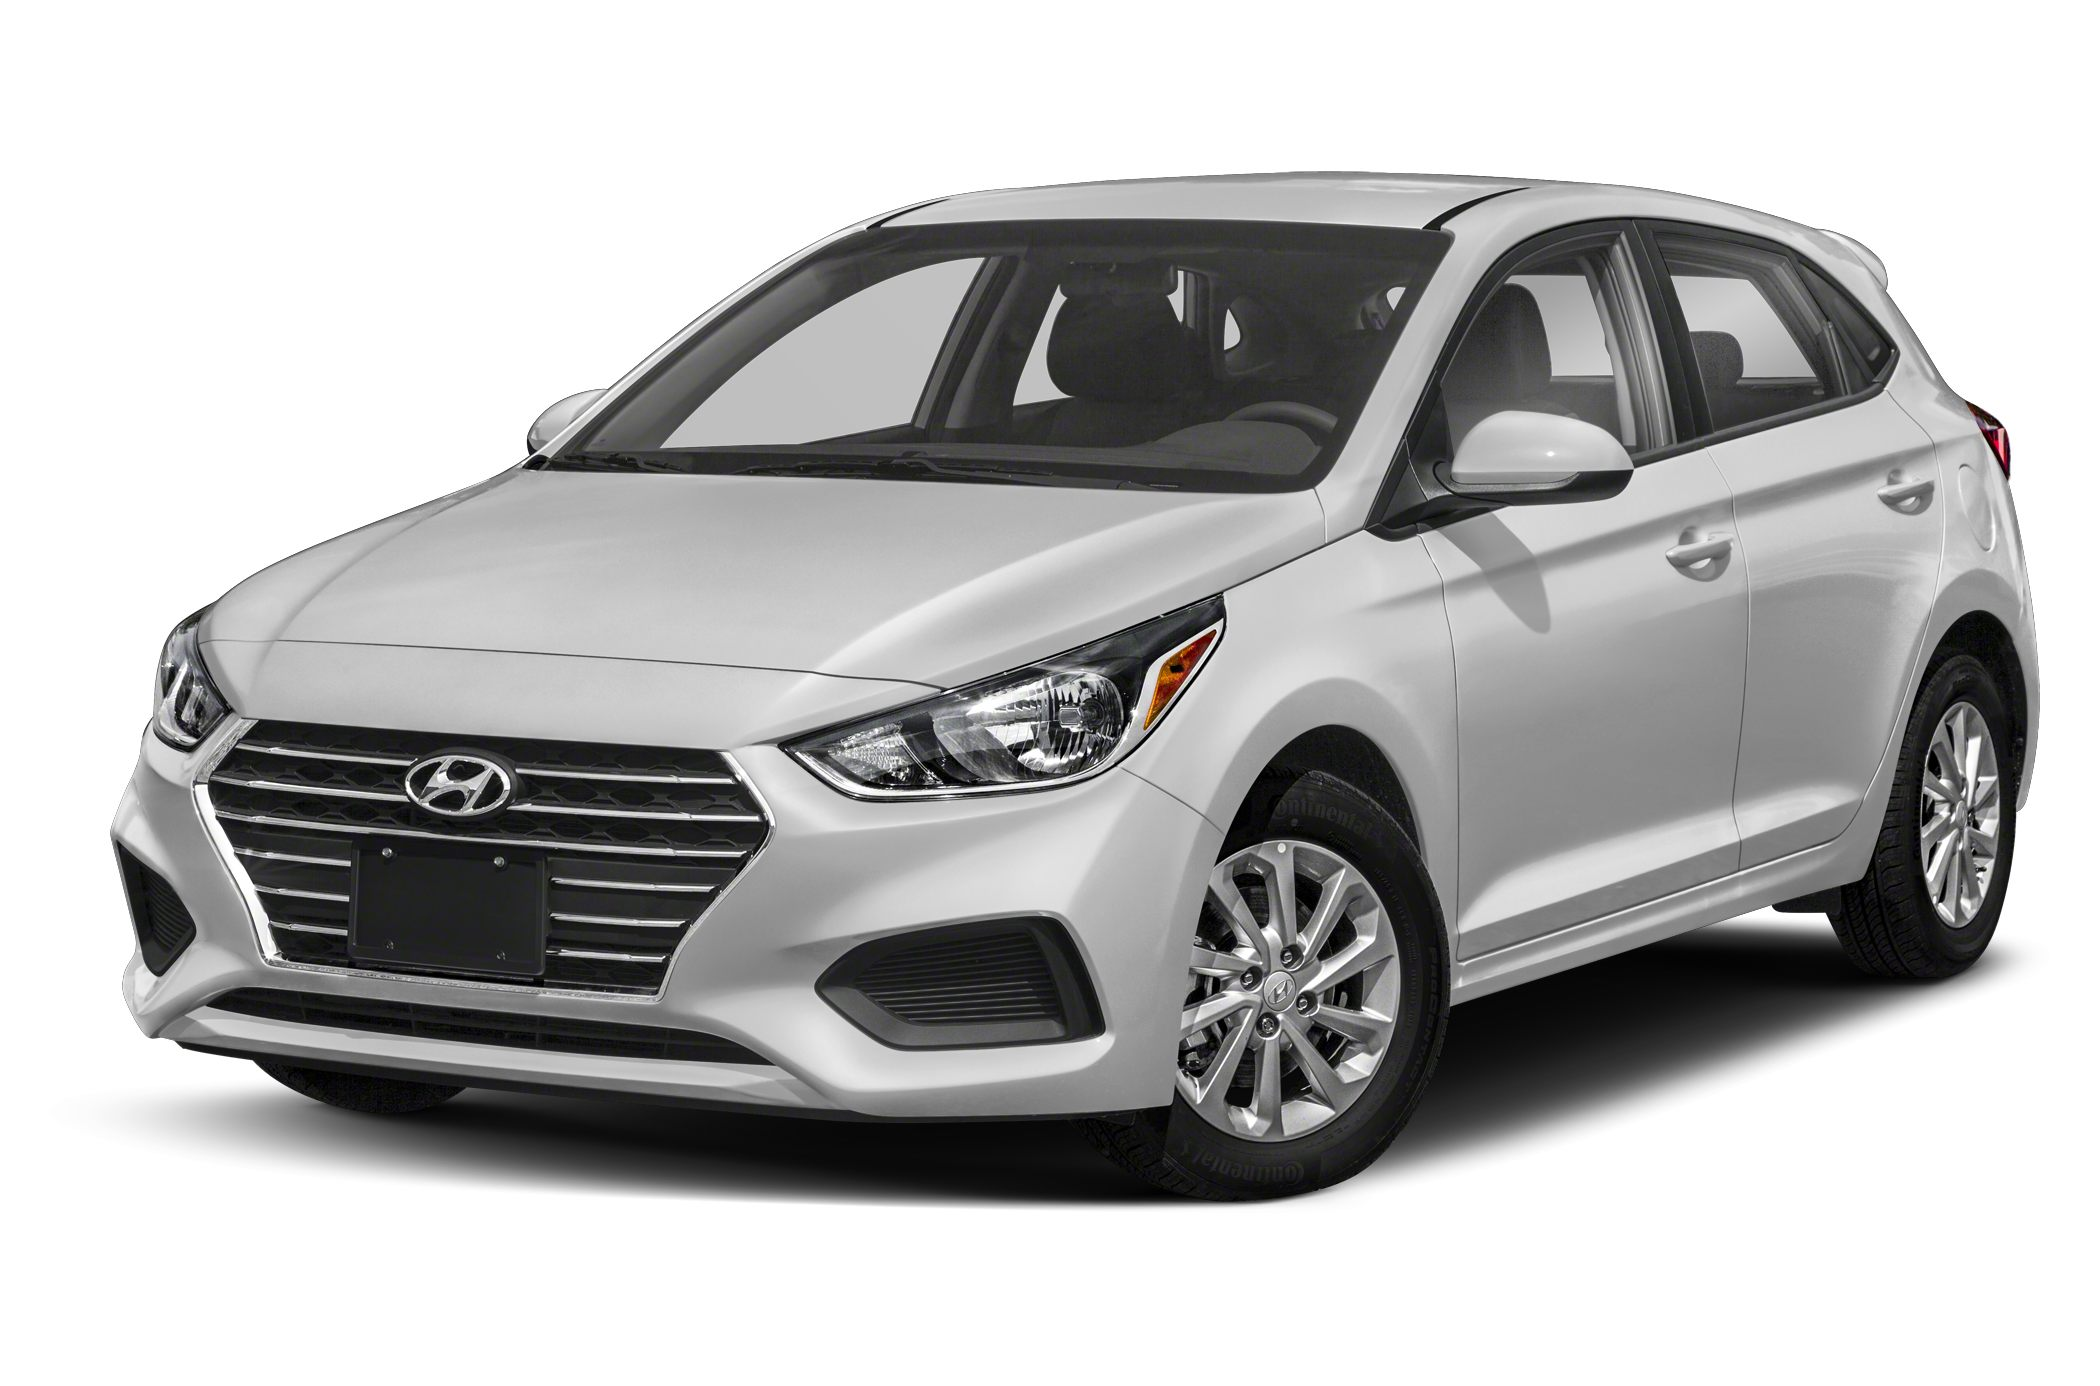 Hyundai Canada Incentives for the new 2021 Hyundai Accent Hatchback and Sedan in Milton, Toronto, and the GTA